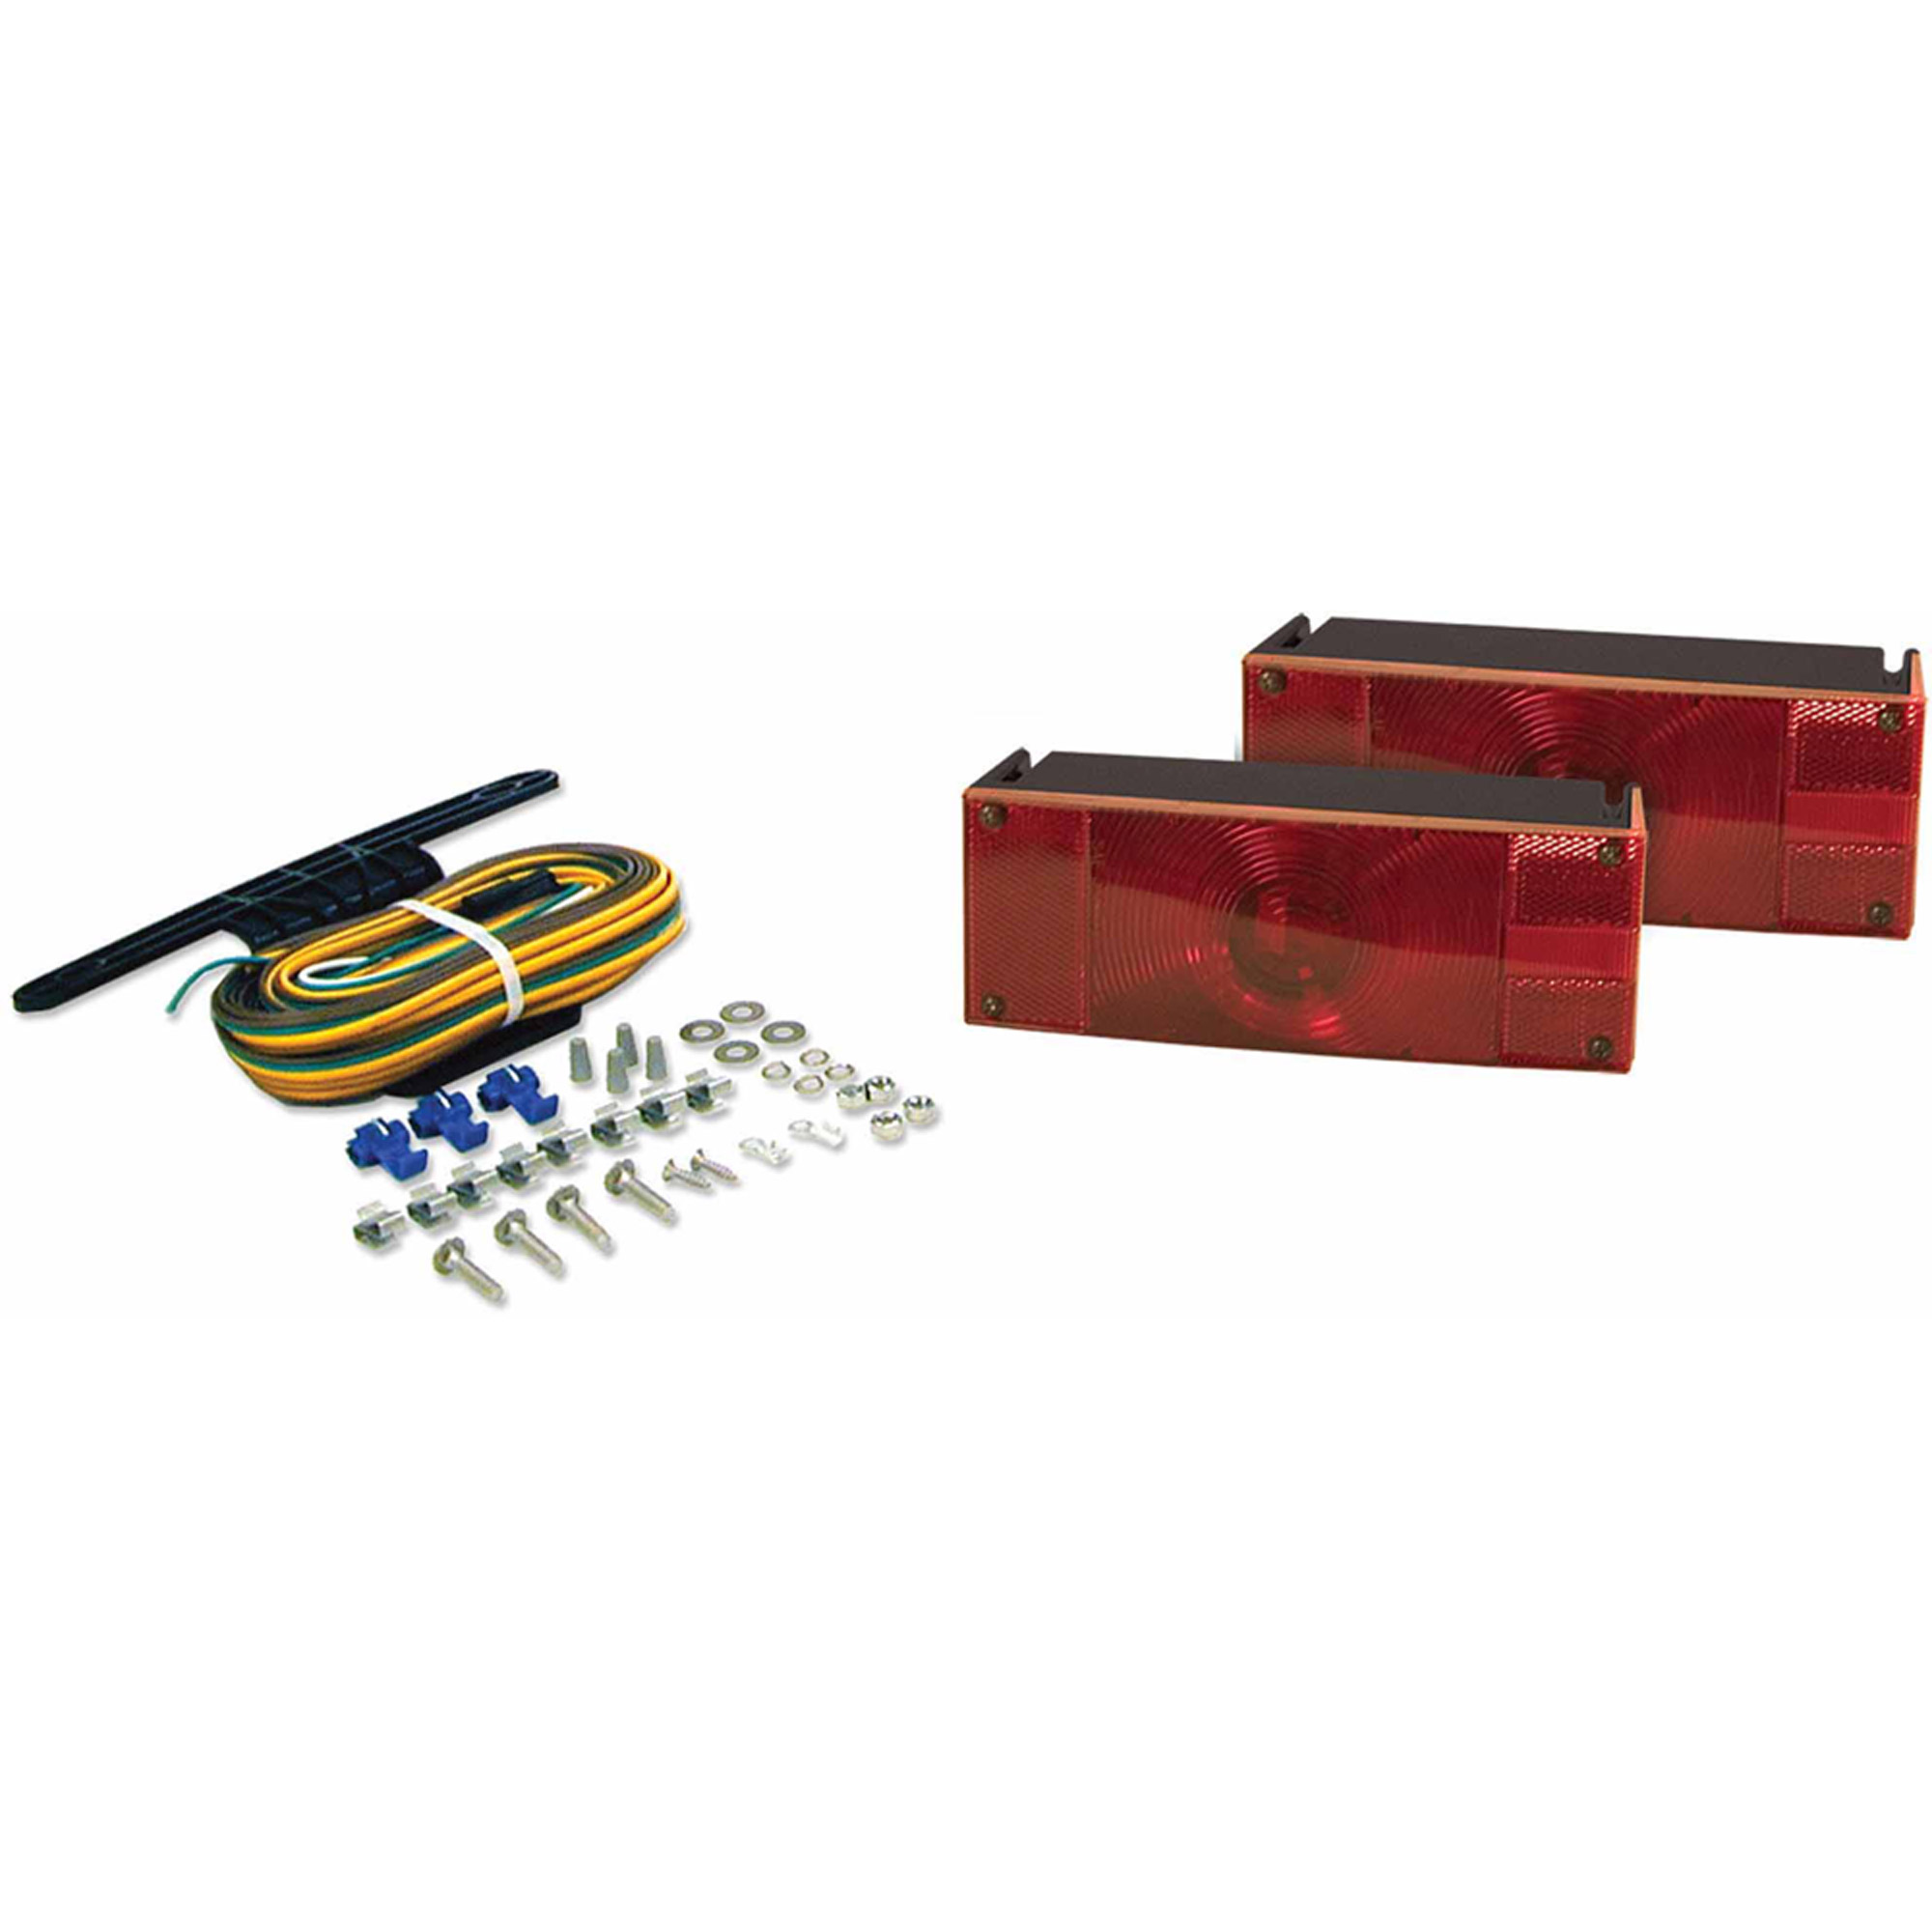 Blazer C6285 Low Profile Submersible Trailer Light Kit for Trailers ...